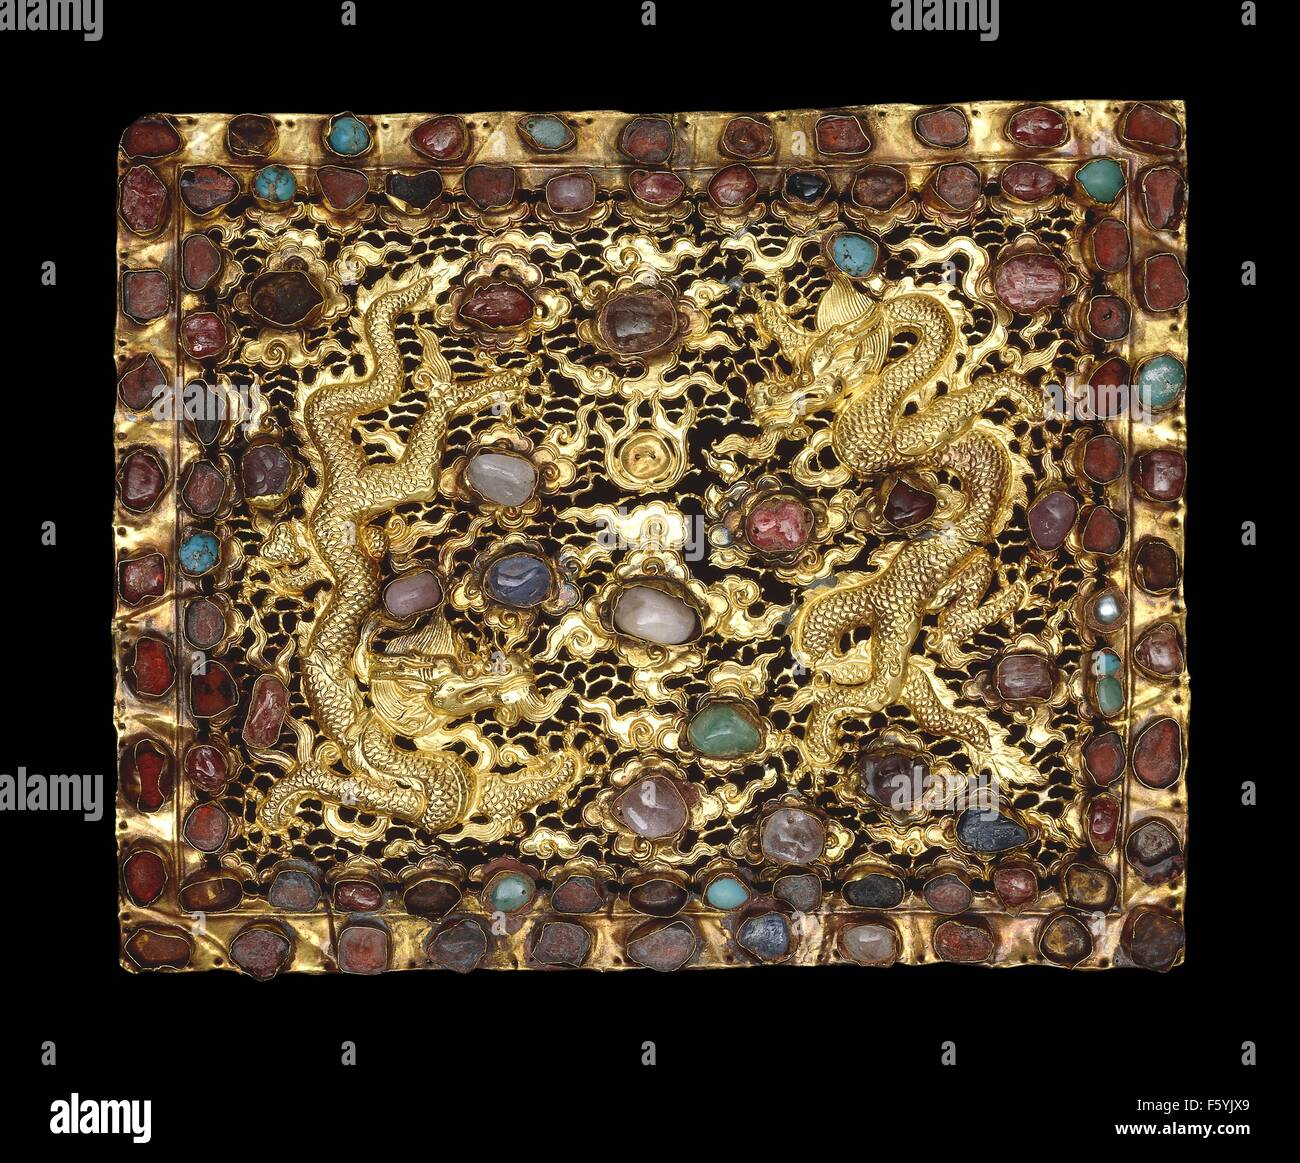 A pair of gold pillow ends, decorated with two dragons and worked in relief with chased detail and openwork. Gold, - Stock Image